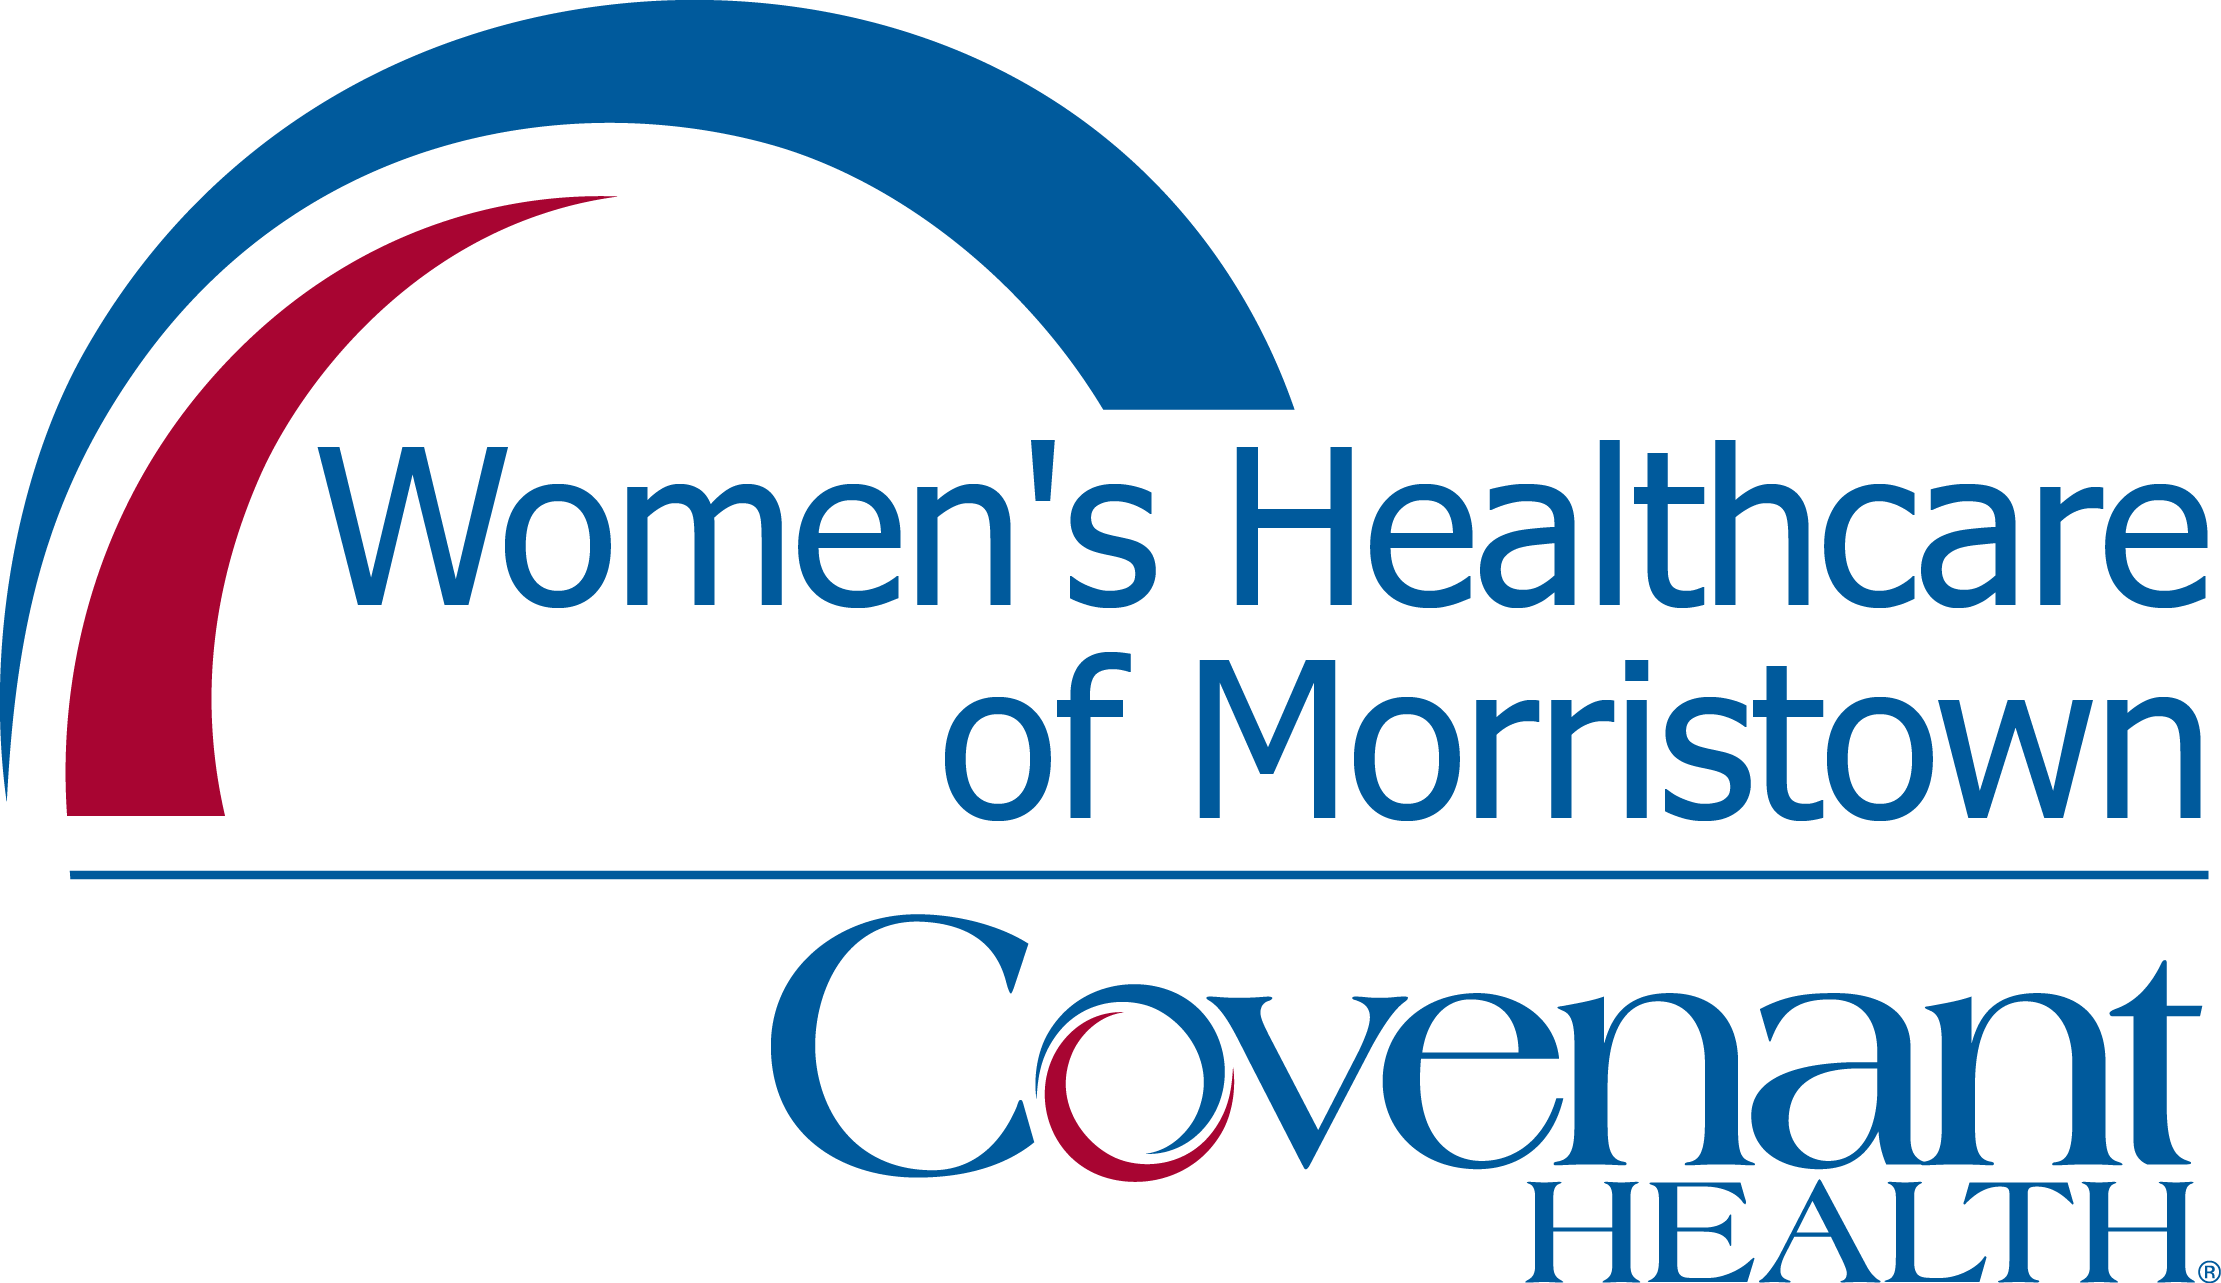 Women's Healthcare of Morristown